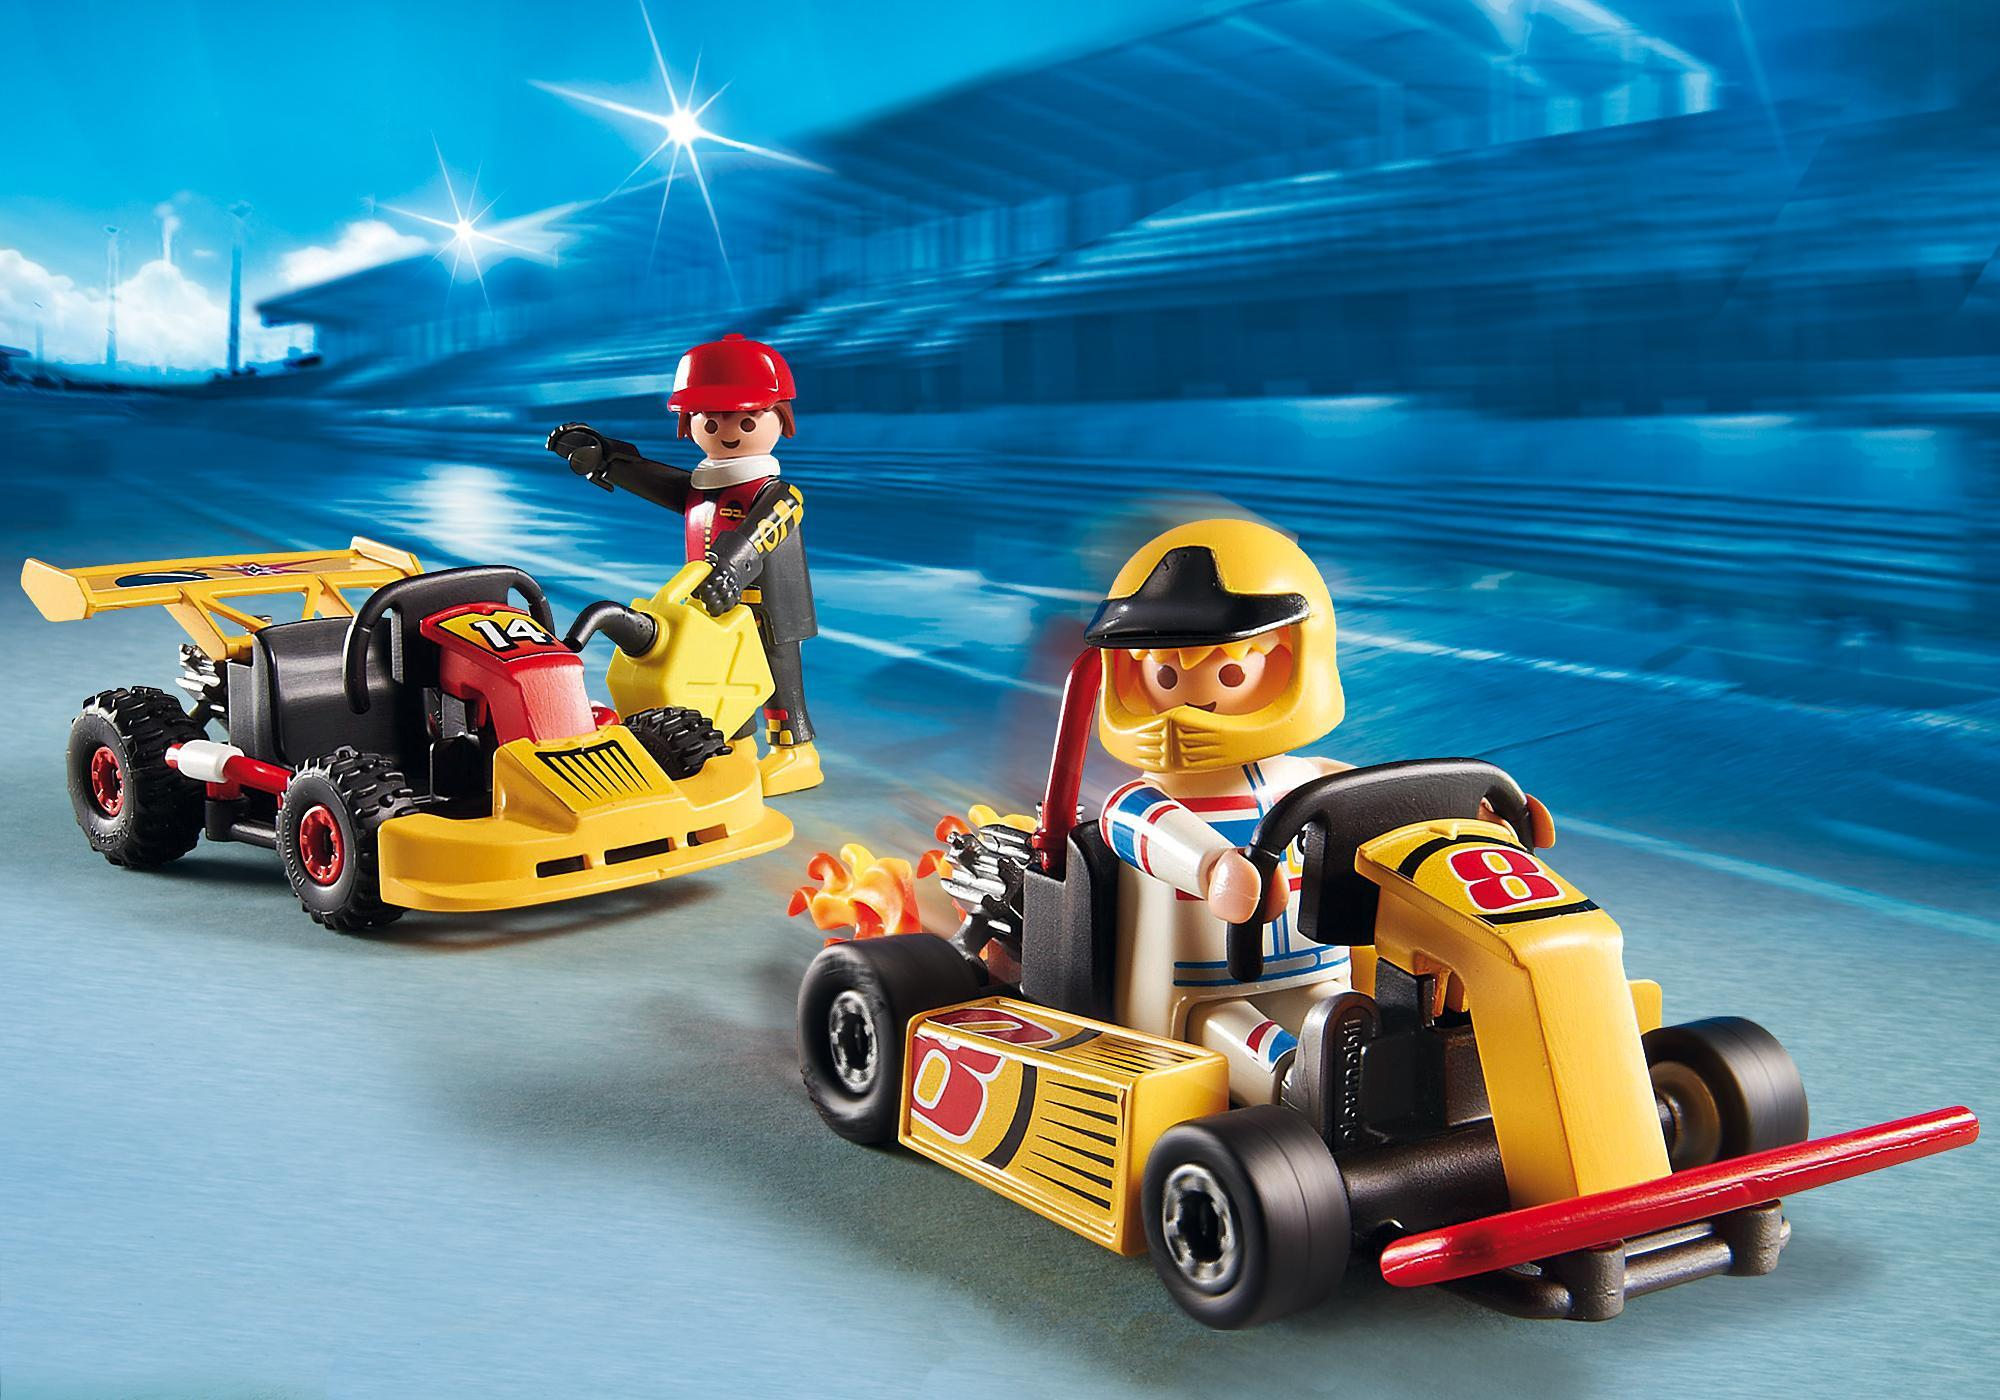 http://media.playmobil.com/i/playmobil/6869_product_extra1